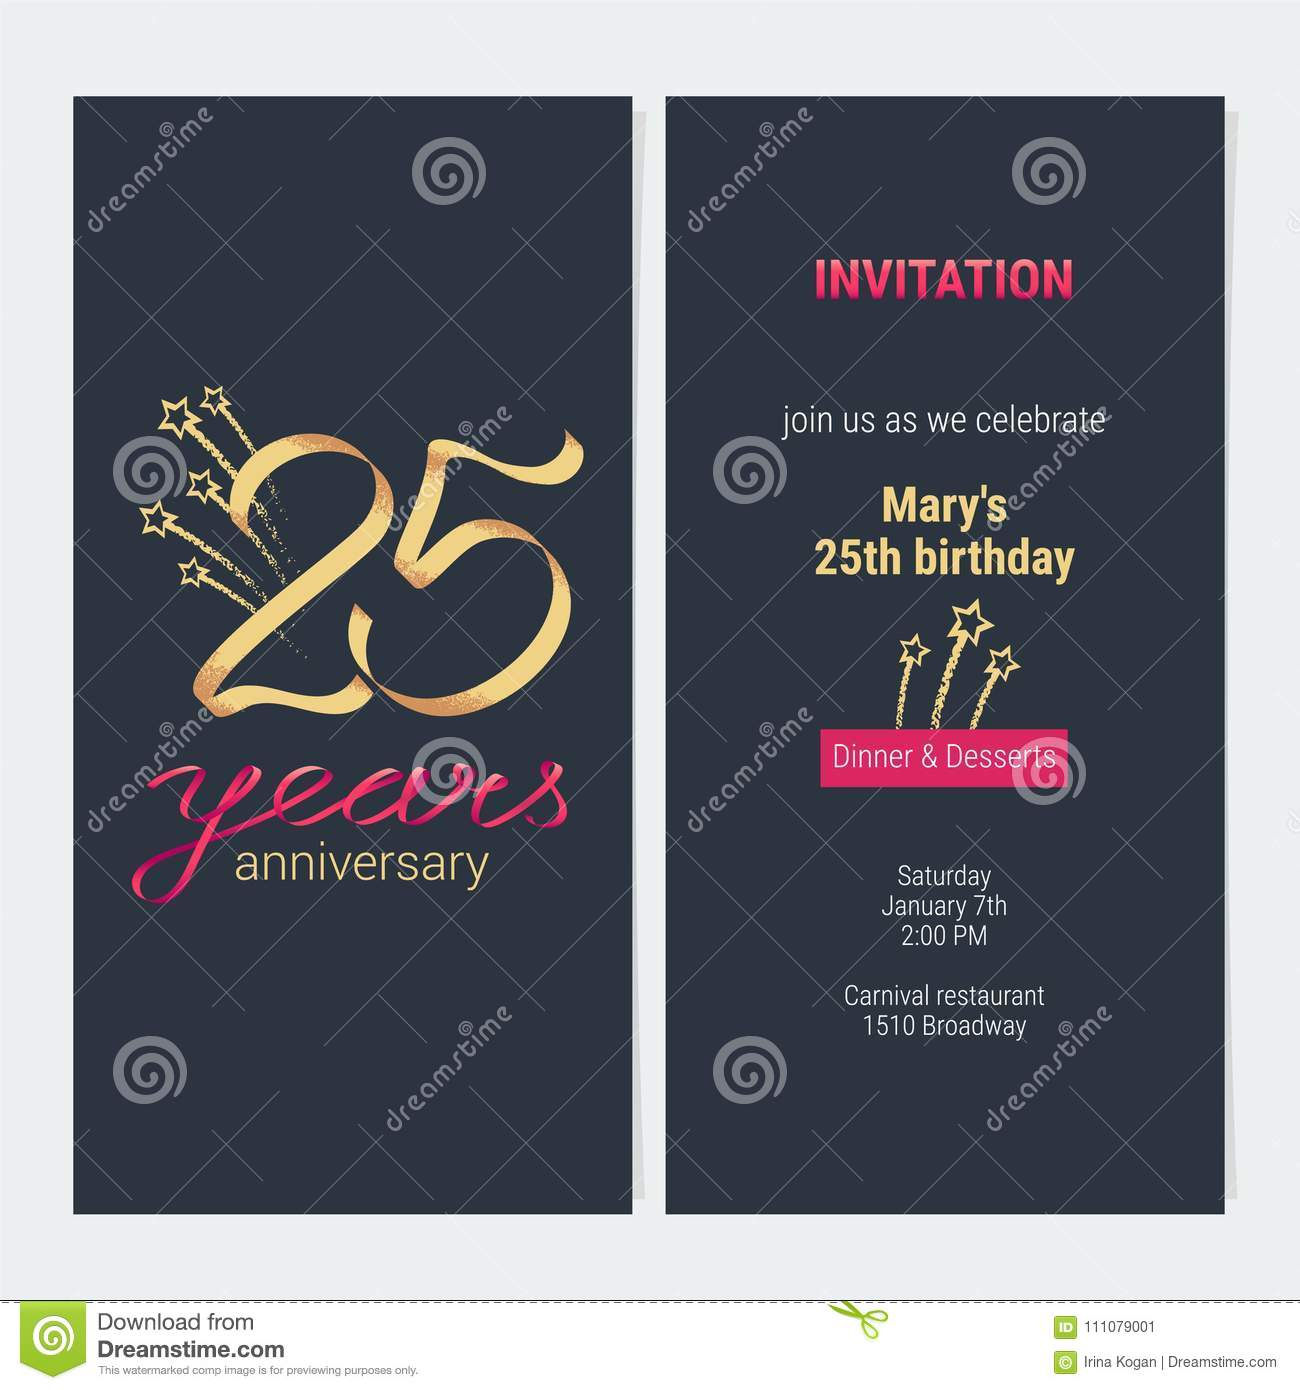 25 Ans D Anniversaire D Invitation De Vecteur De Carte Illustration